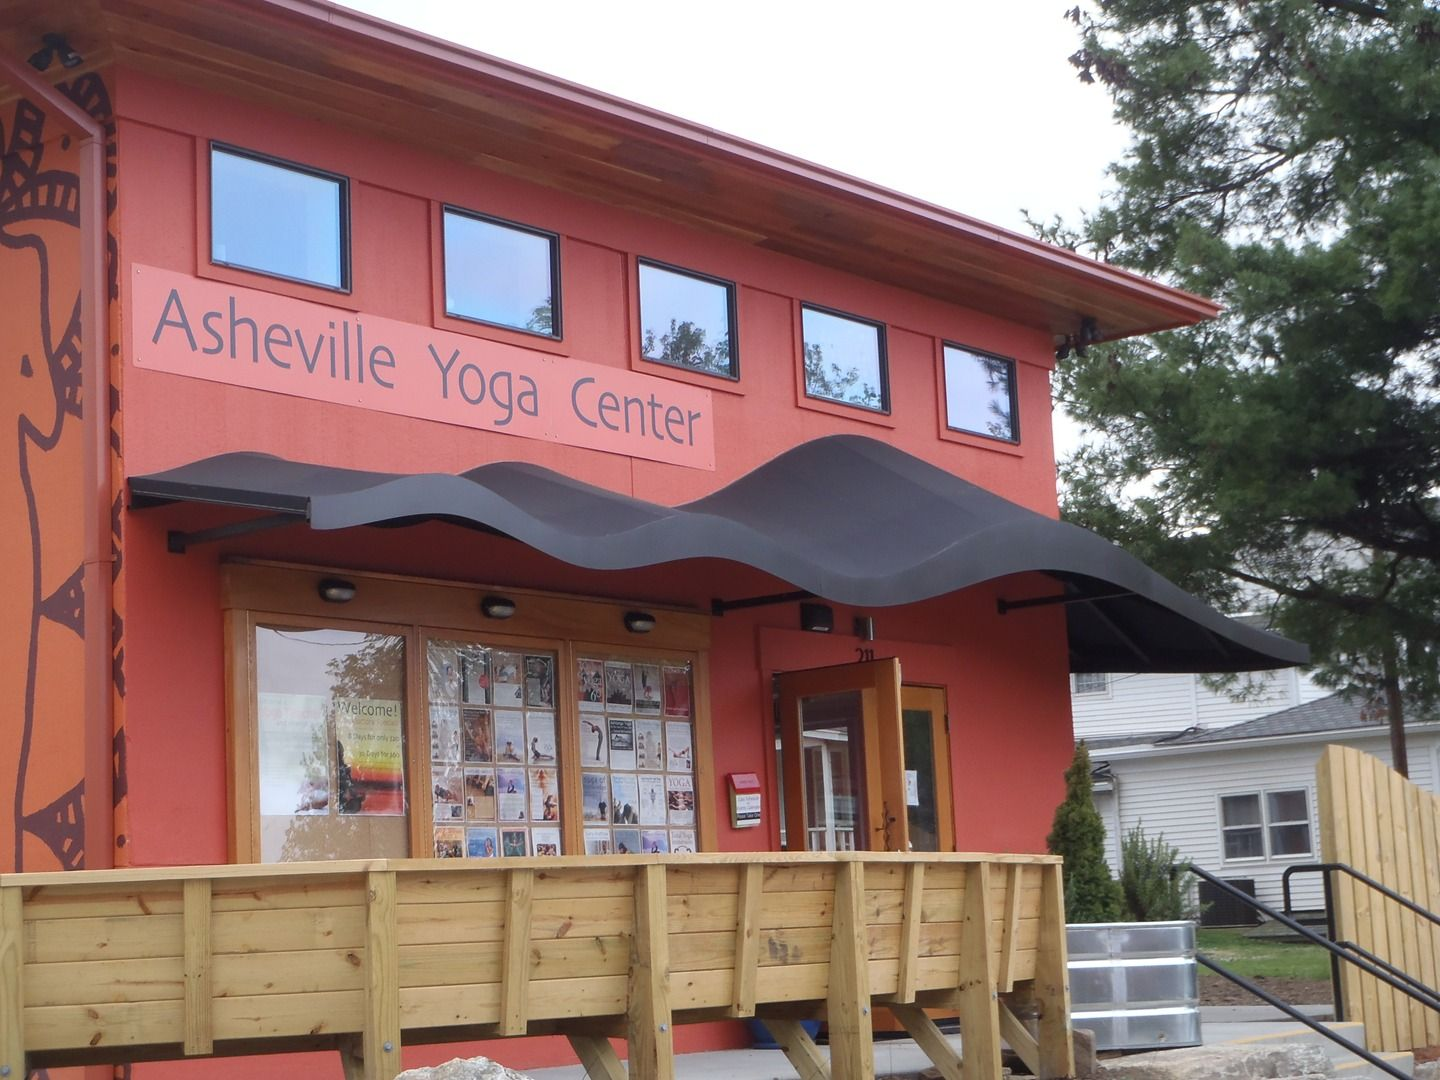 custom awnings for asheville yoga center asheville nc